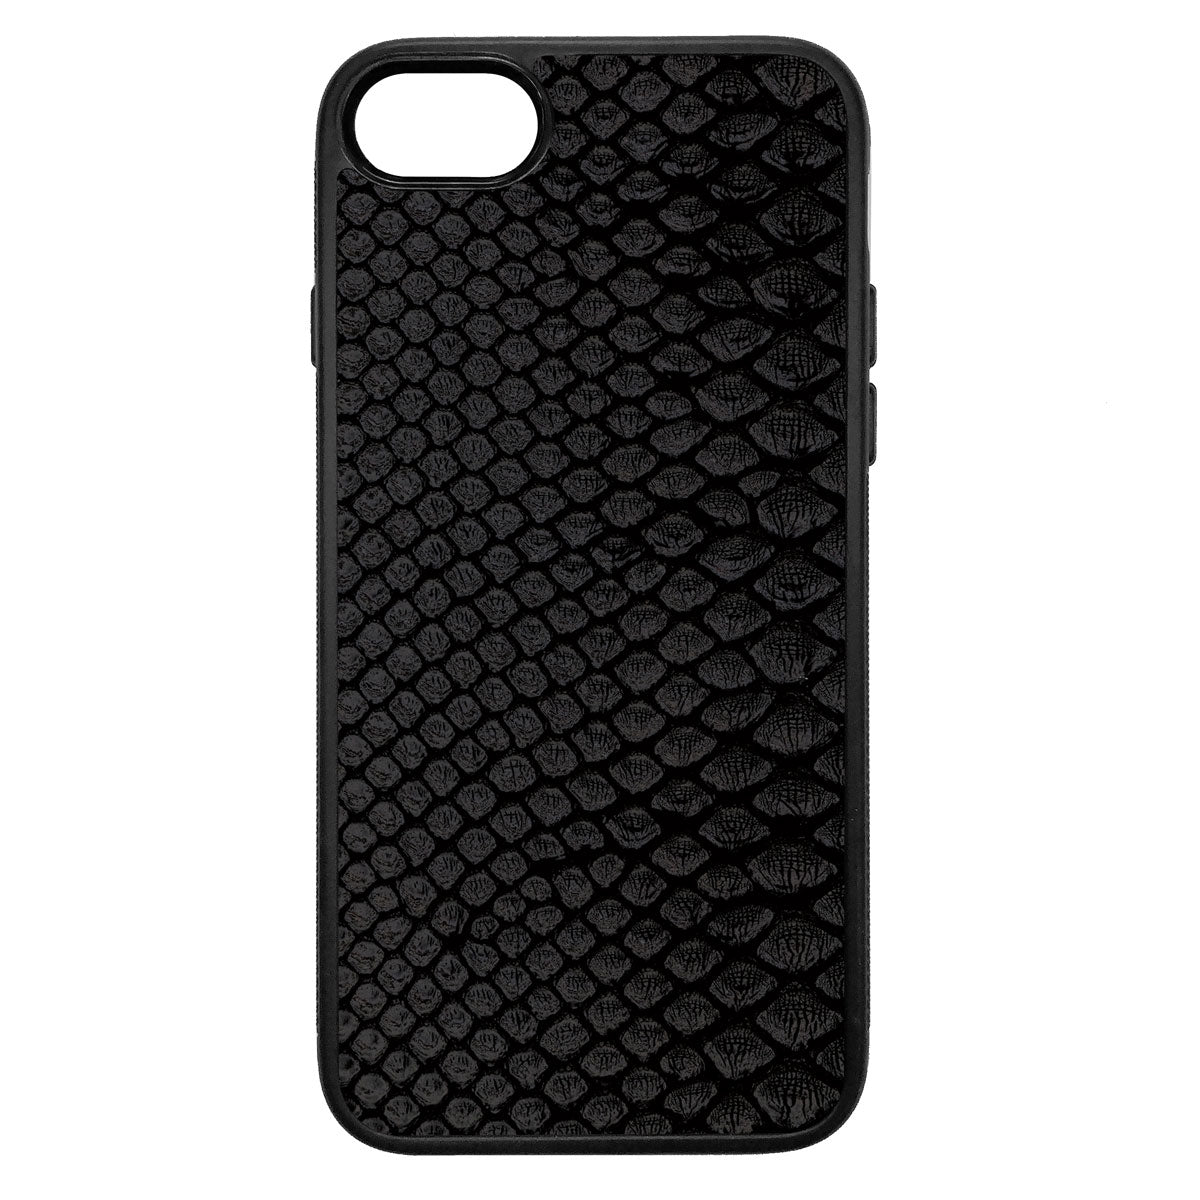 Black Python Back iPhone 8 Leather Case